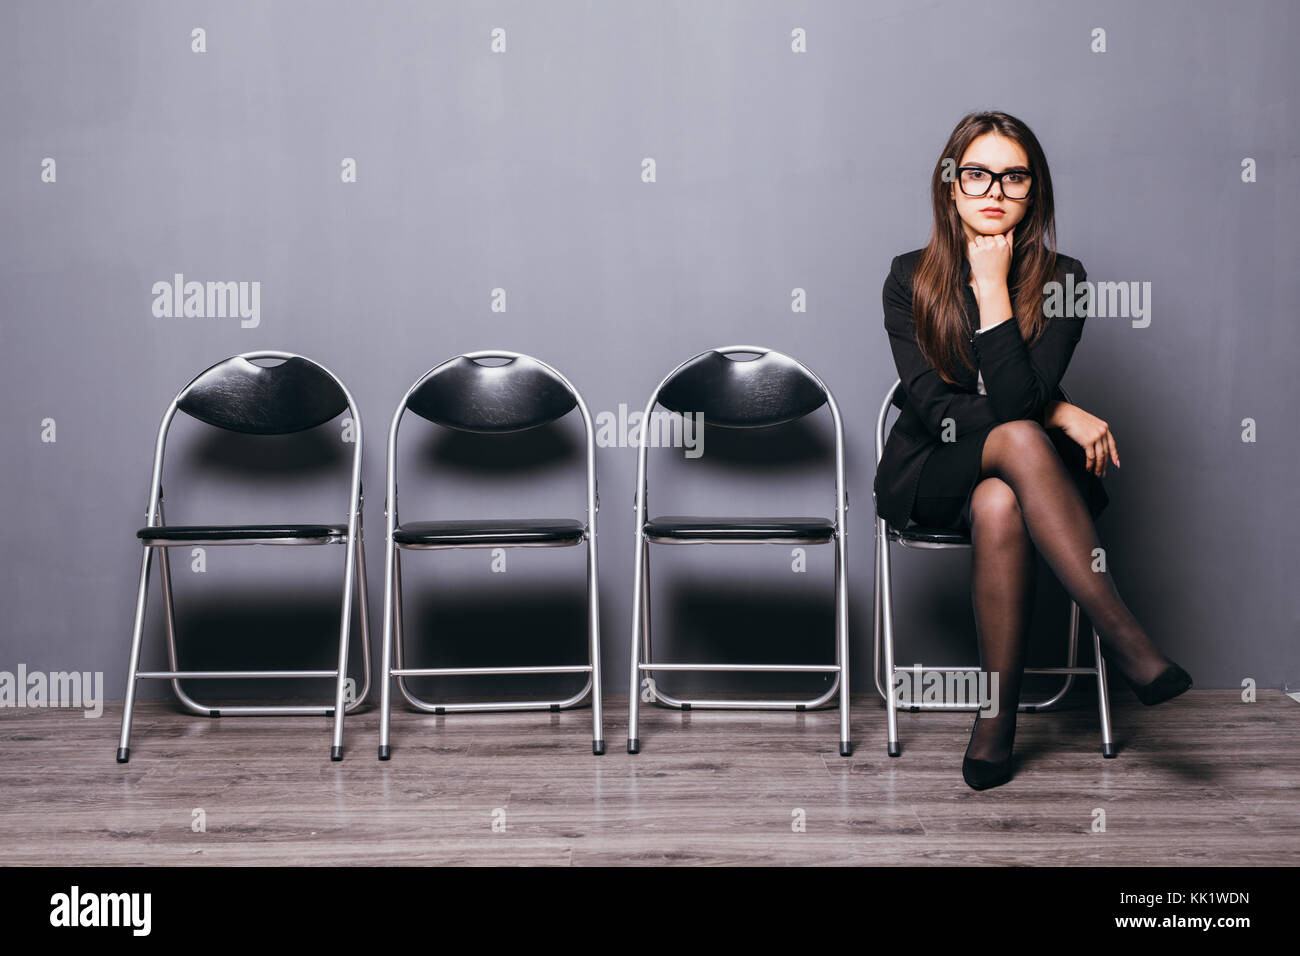 Young pretty woman waiting for job interview - Stock Image